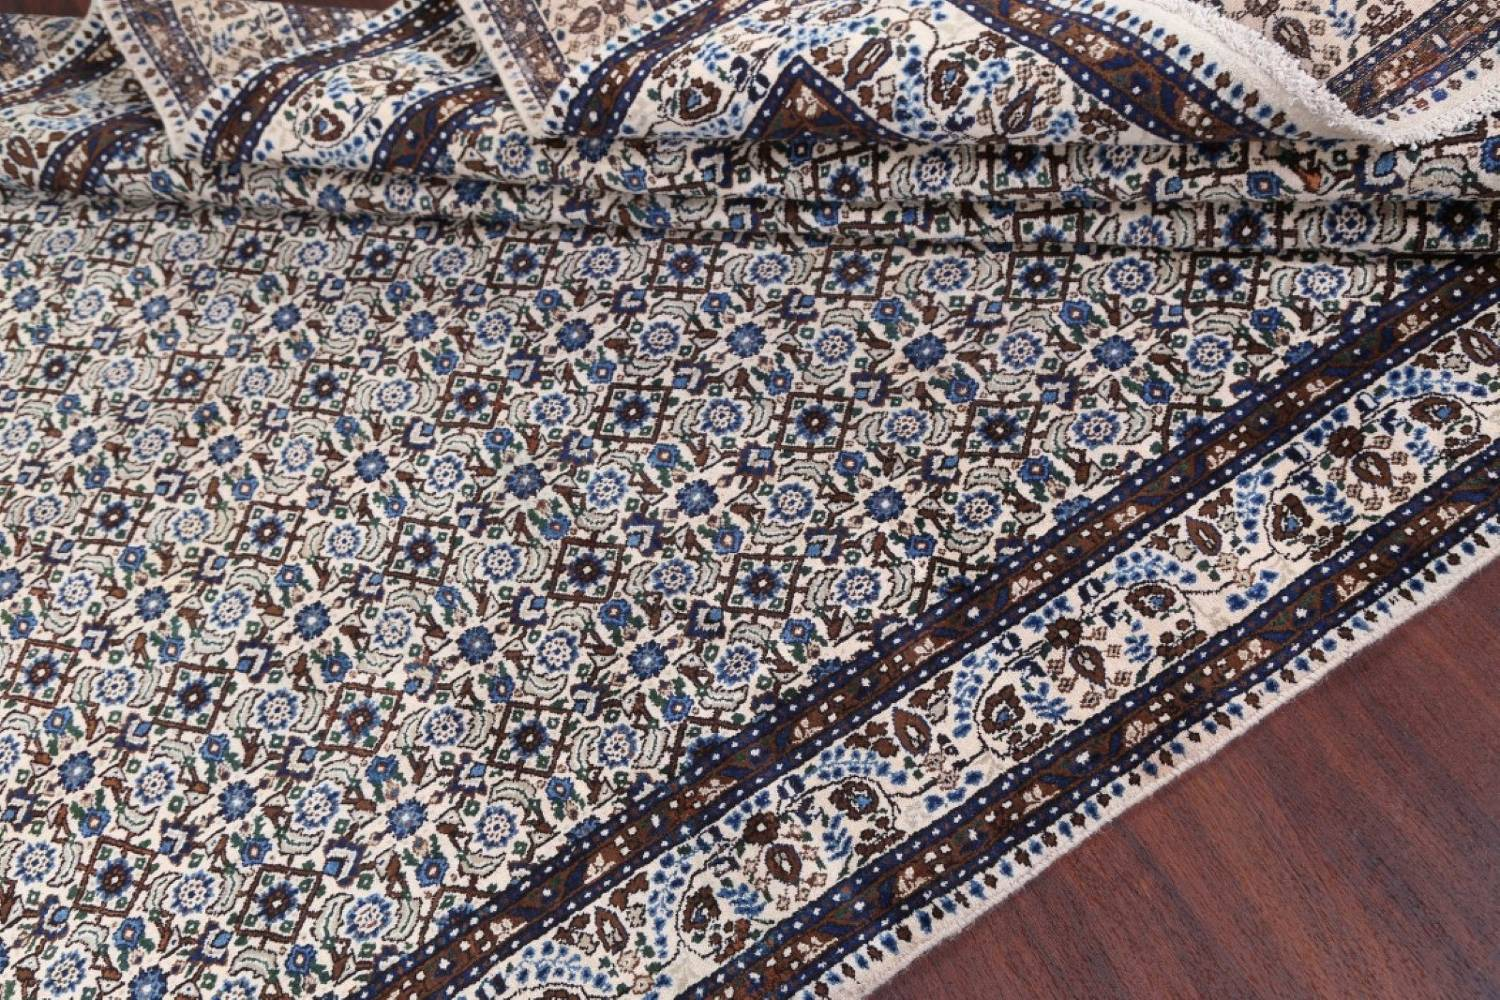 All-Over Floral 7x11 Mood Persian Wool Area Rug image 14